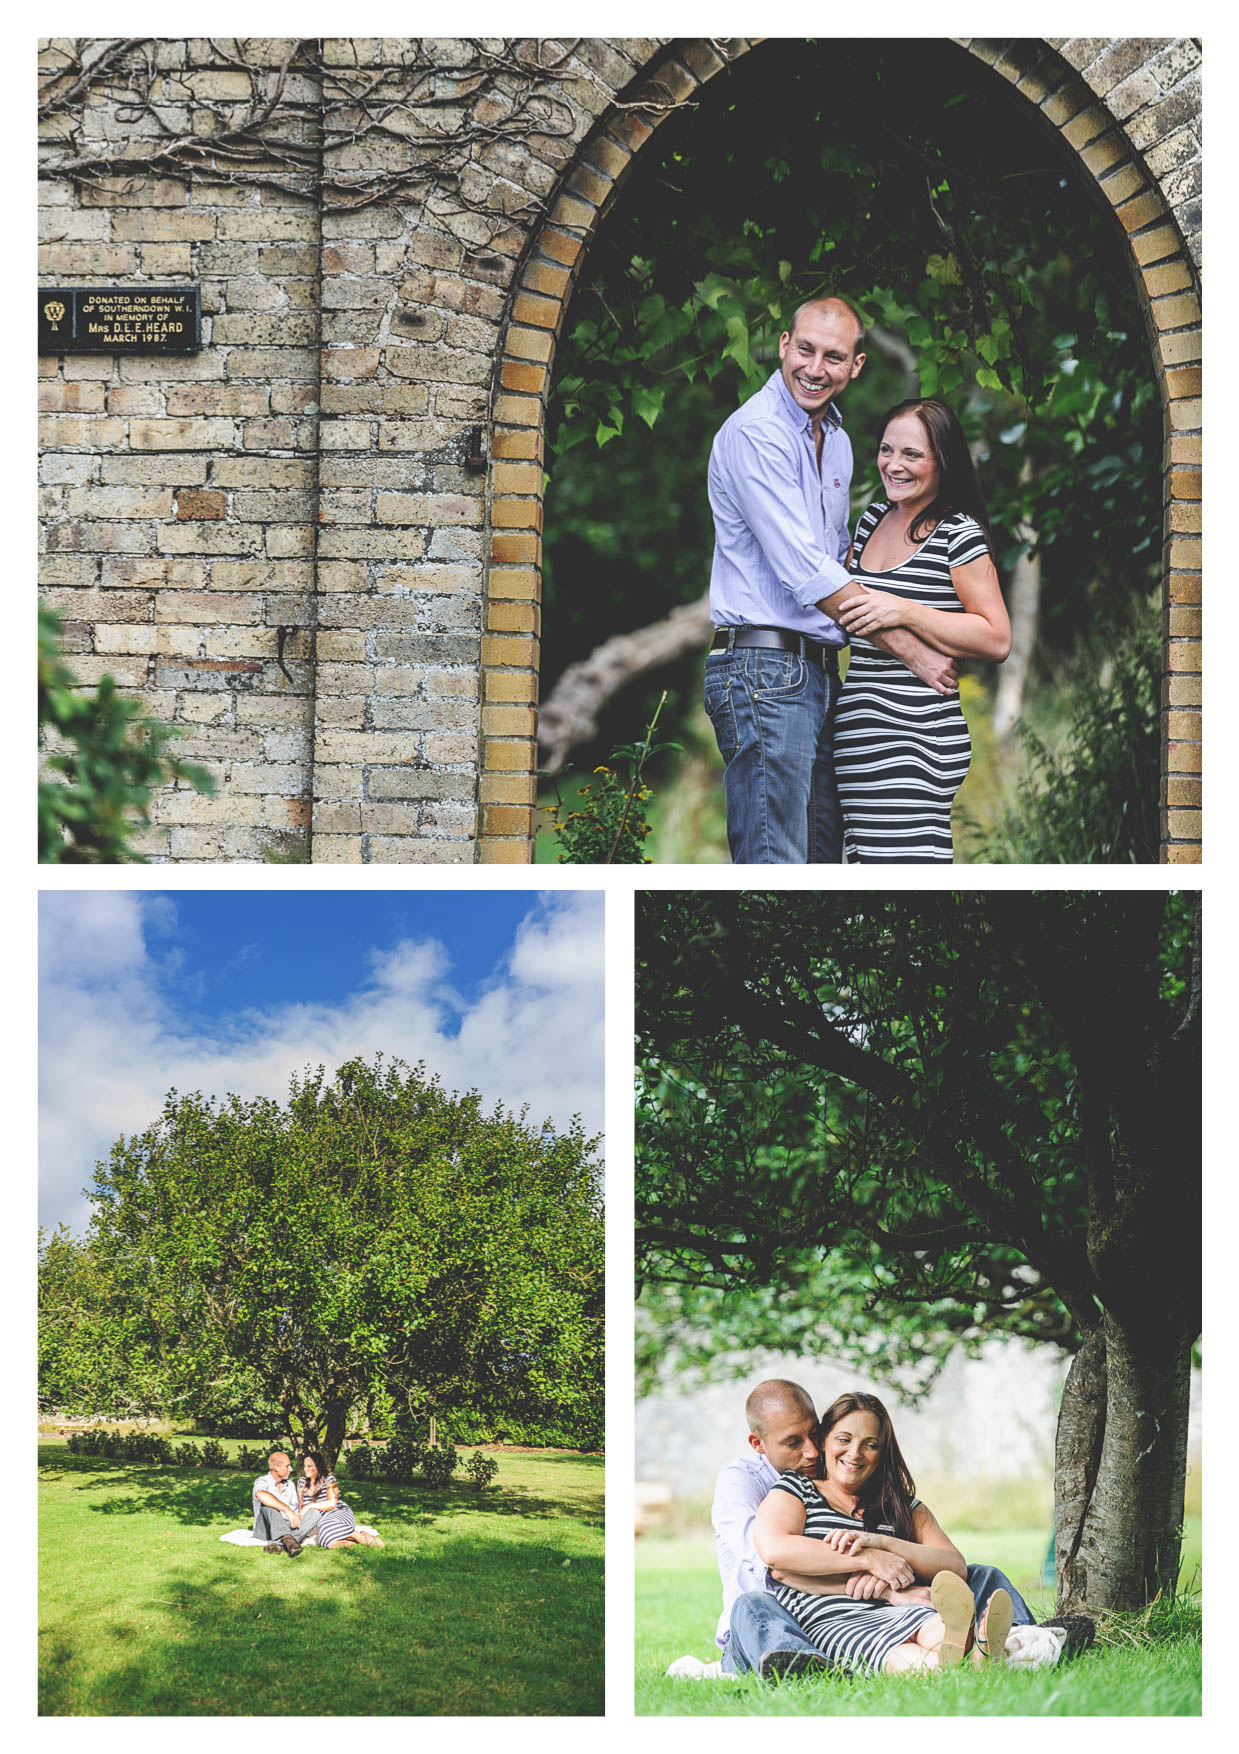 South Wales Wedding Photographer - Laura & Chris